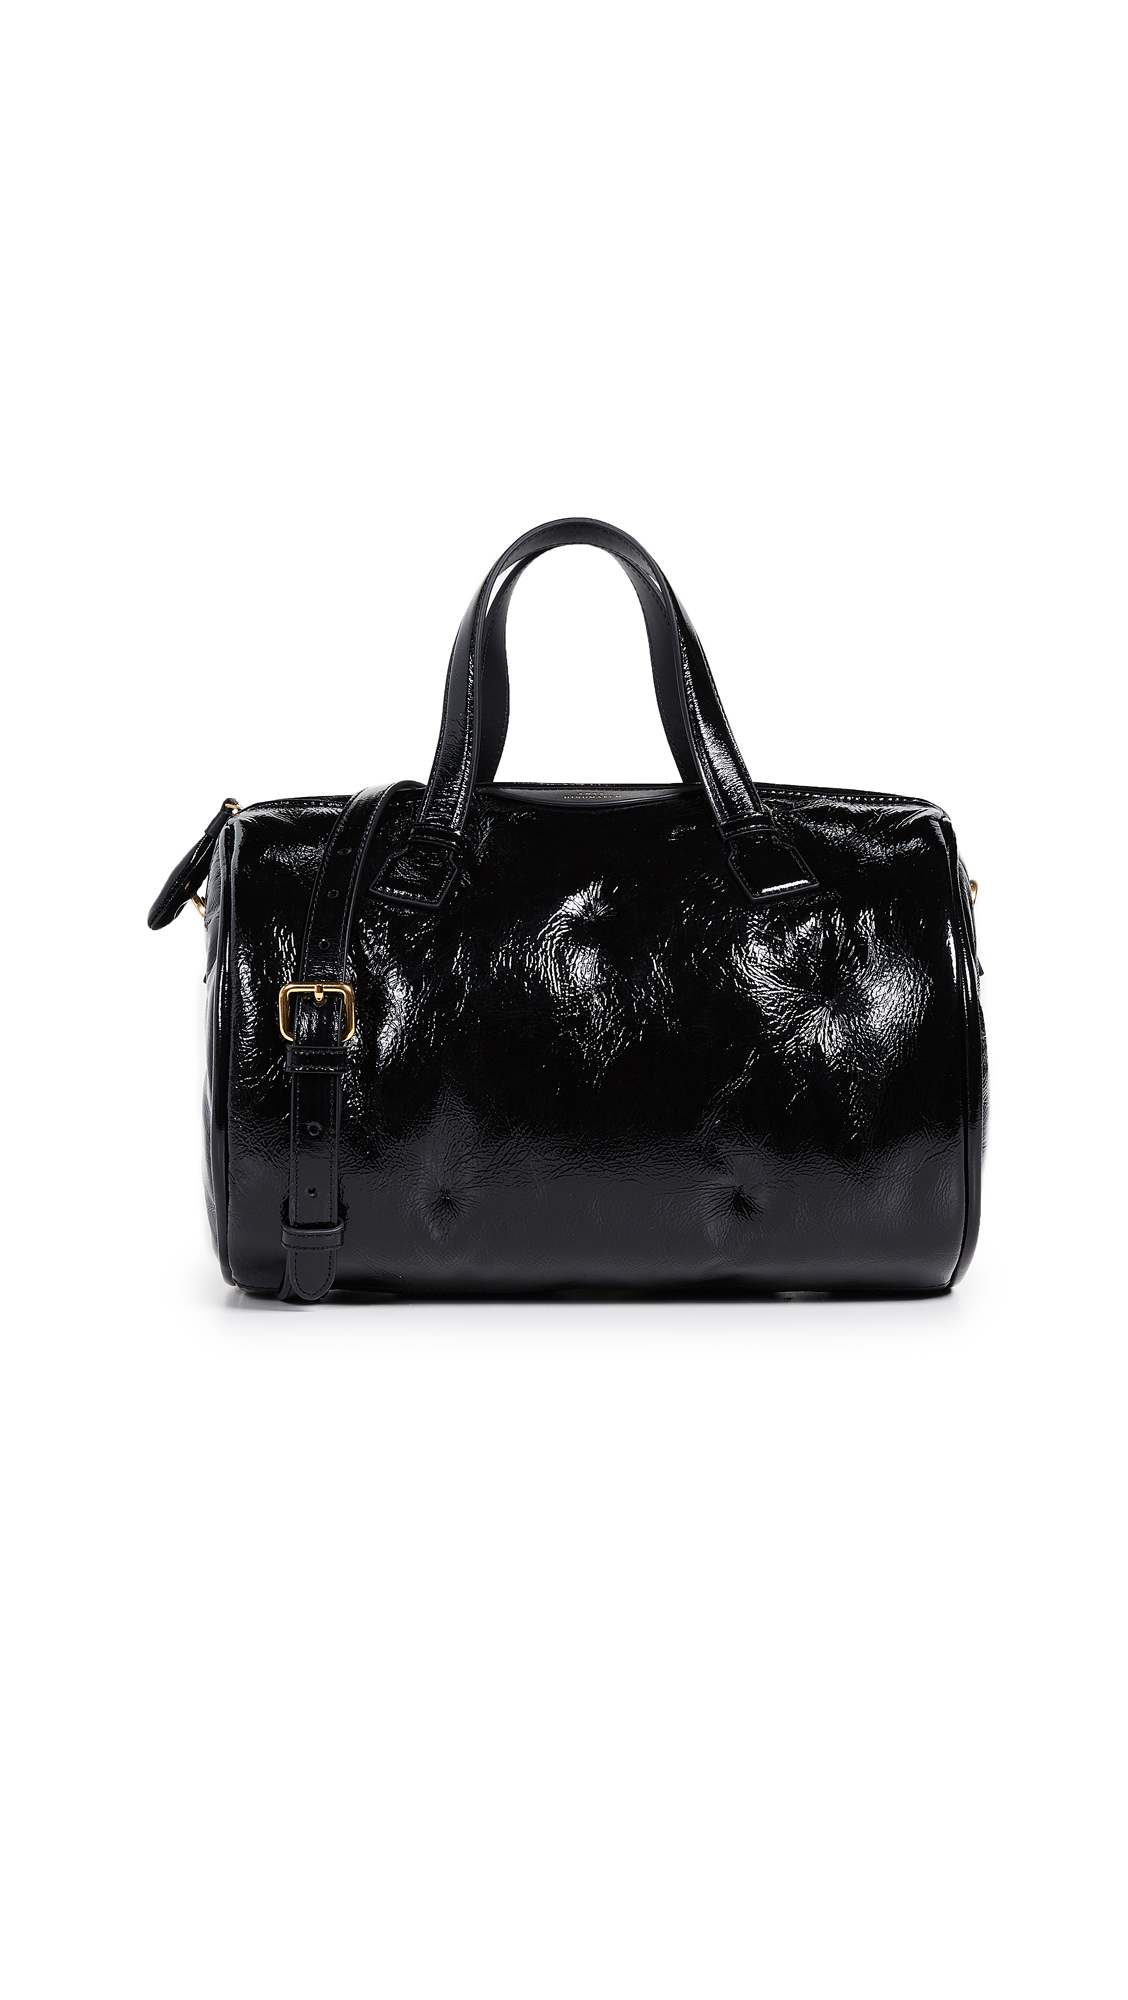 Leather: Lambskin Leather: Cowhide Tufted, patent exterior Suede interior Zip at top Zip interior pocket Removable strap Lined Dust bag included Weight: 22oz / 0.62kg Imported, China Measurements Height: 7in / 18cm Length: 7.75in / 20cm Depth: 6in / 15cm Strap drop: 24in / 61cm Handle drop: 4in / 10cm